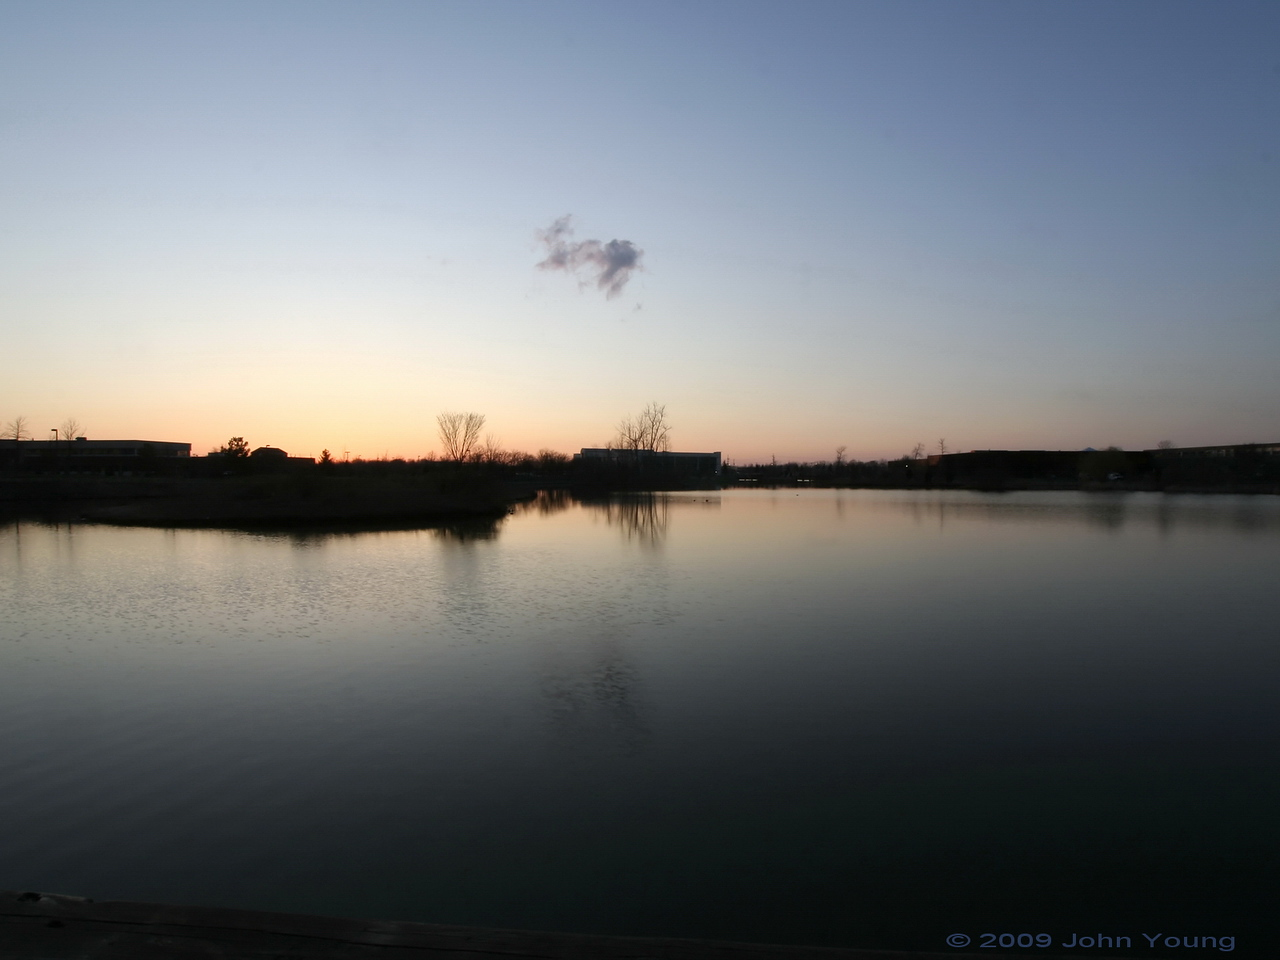 Sunset at Canal Ponds - April 1, 2009